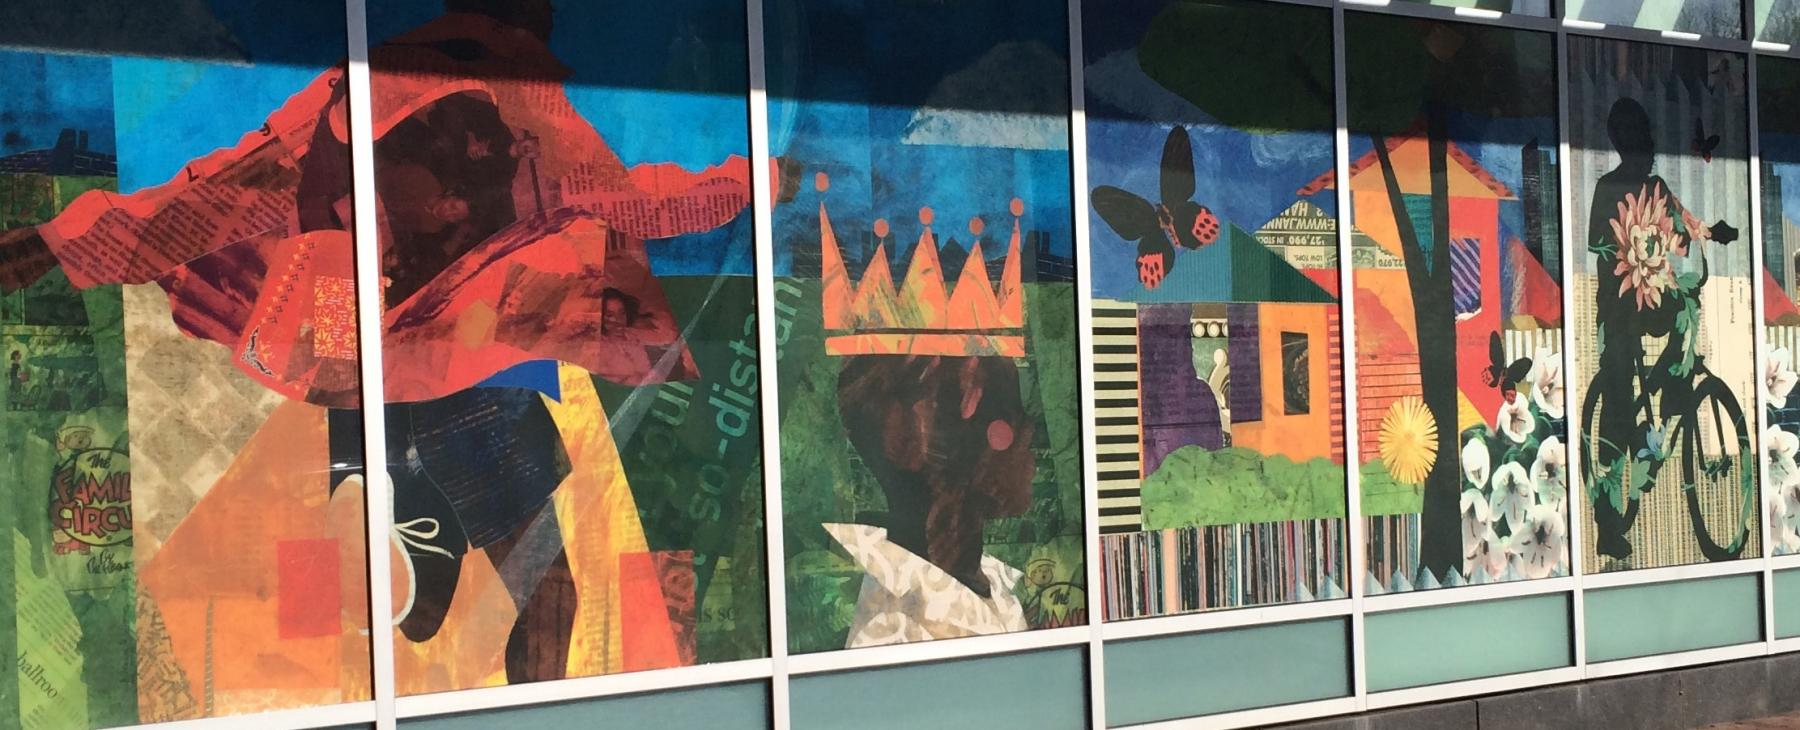 A window mural of Black folks thriving: riding bikes, running through the streets, wearing a crown.